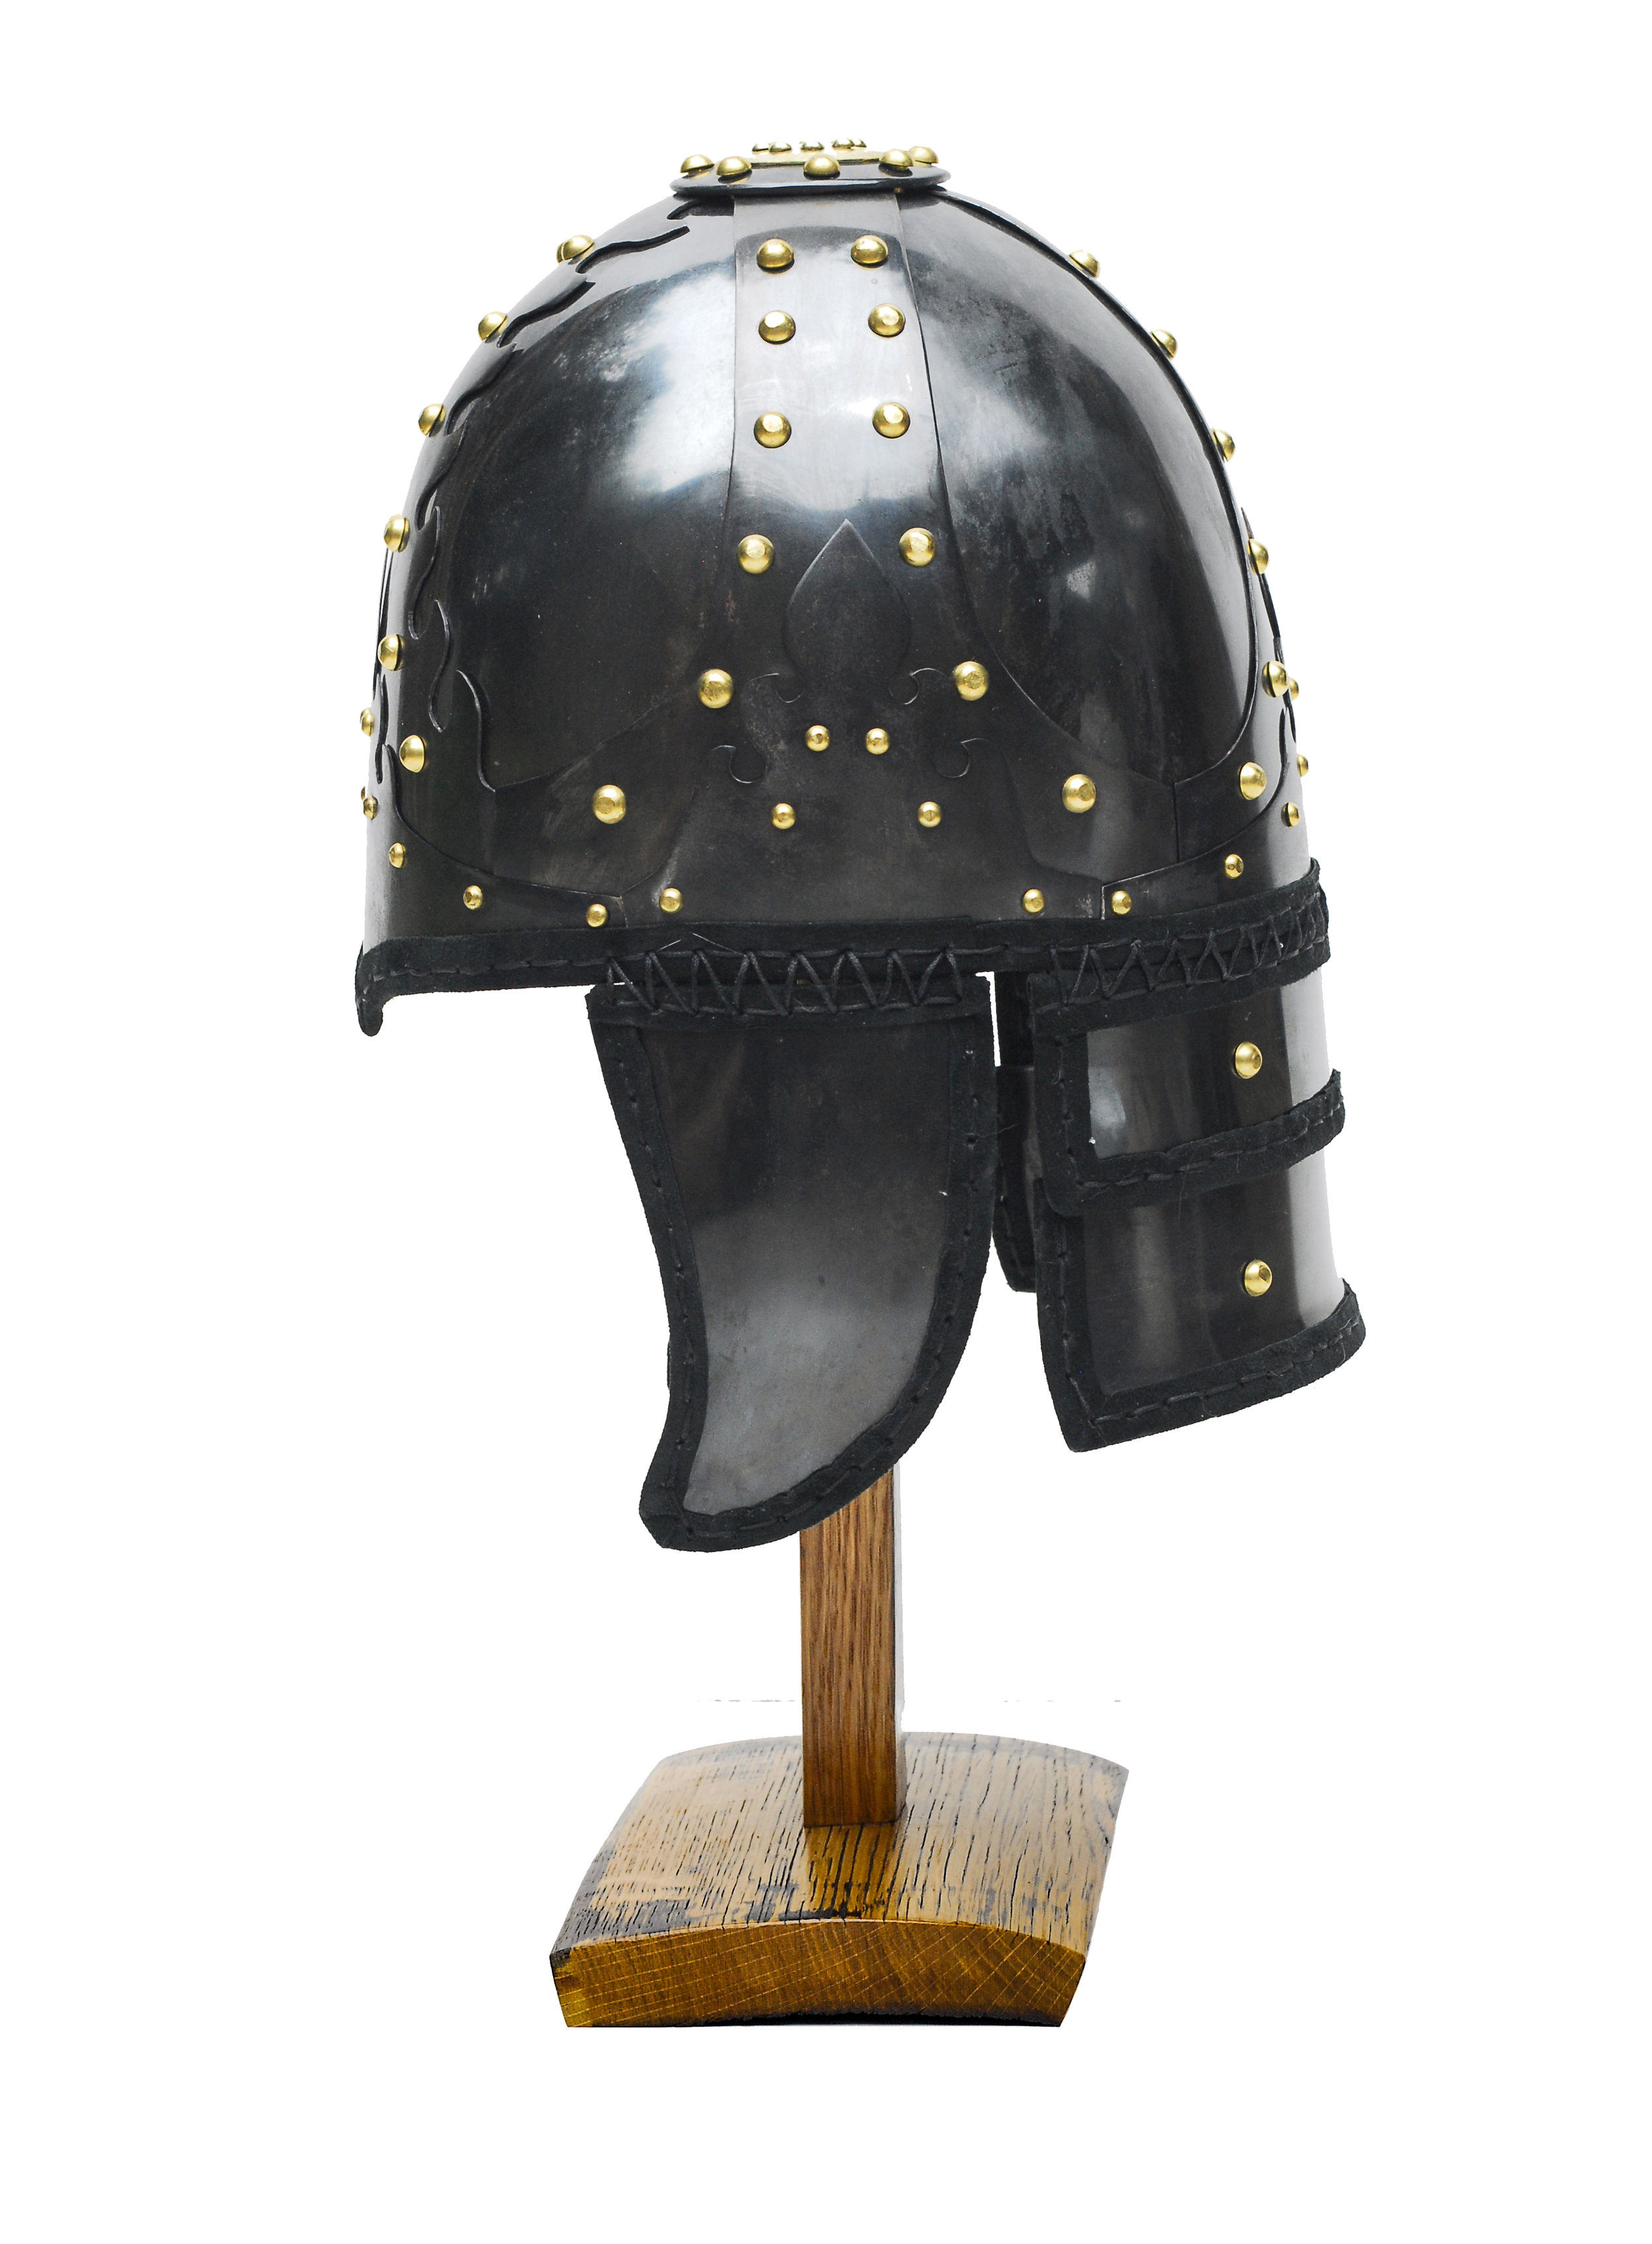 Helm of the Tower Guard